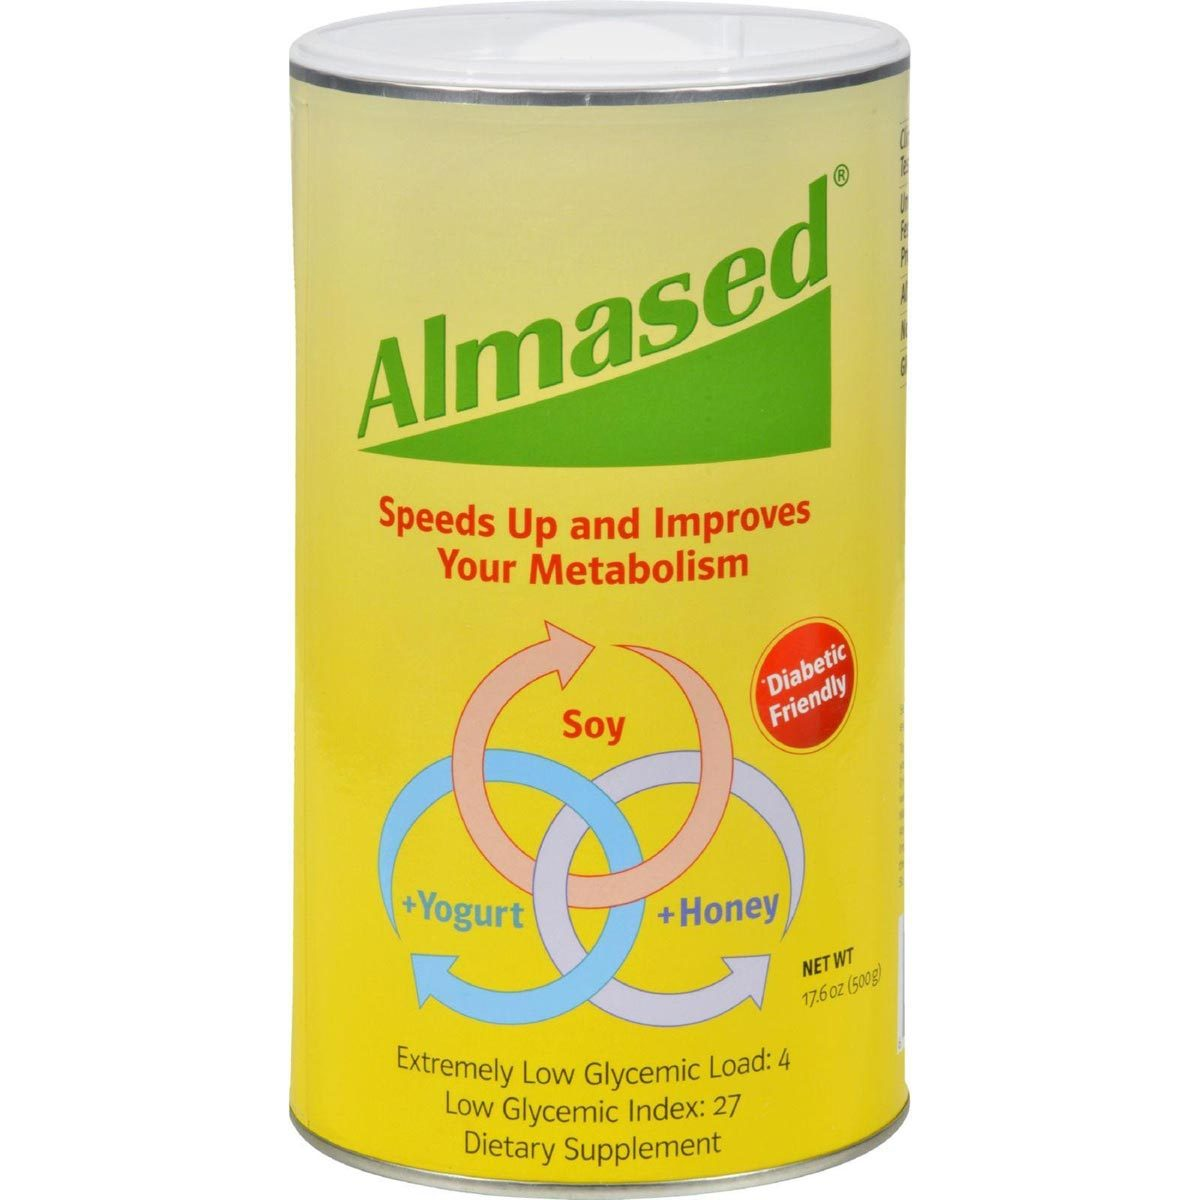 Almased Review: What You Need to Know